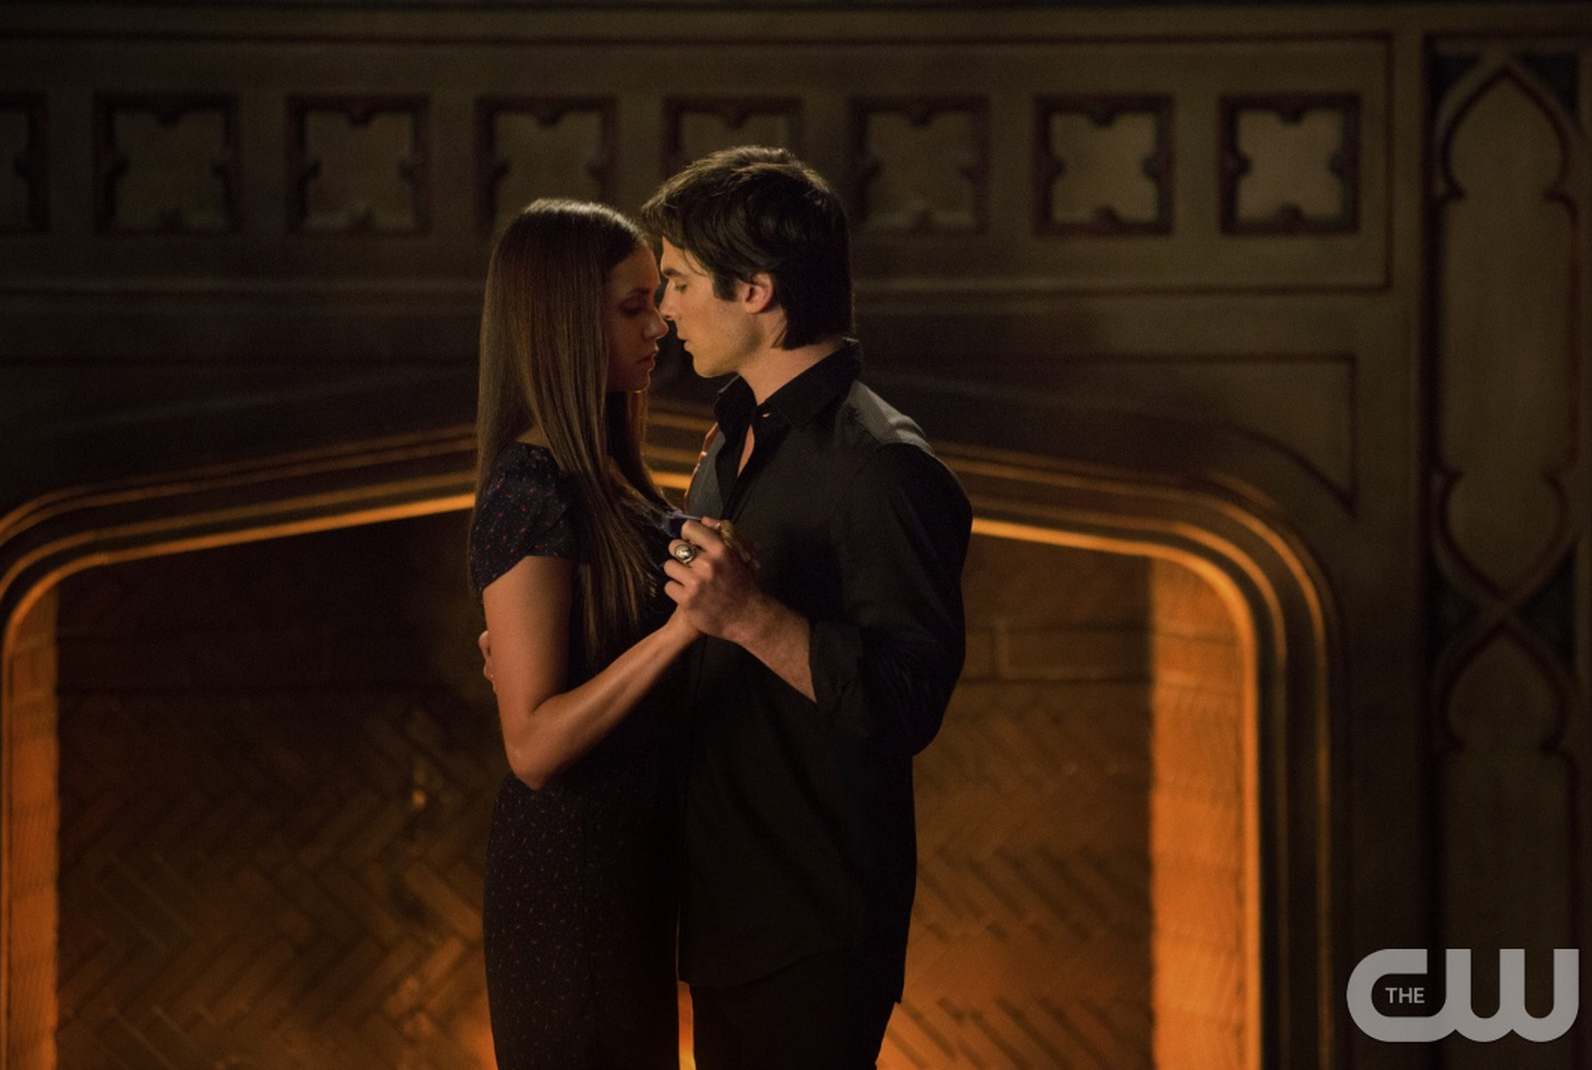 damon and elena 6x06 ending relationship